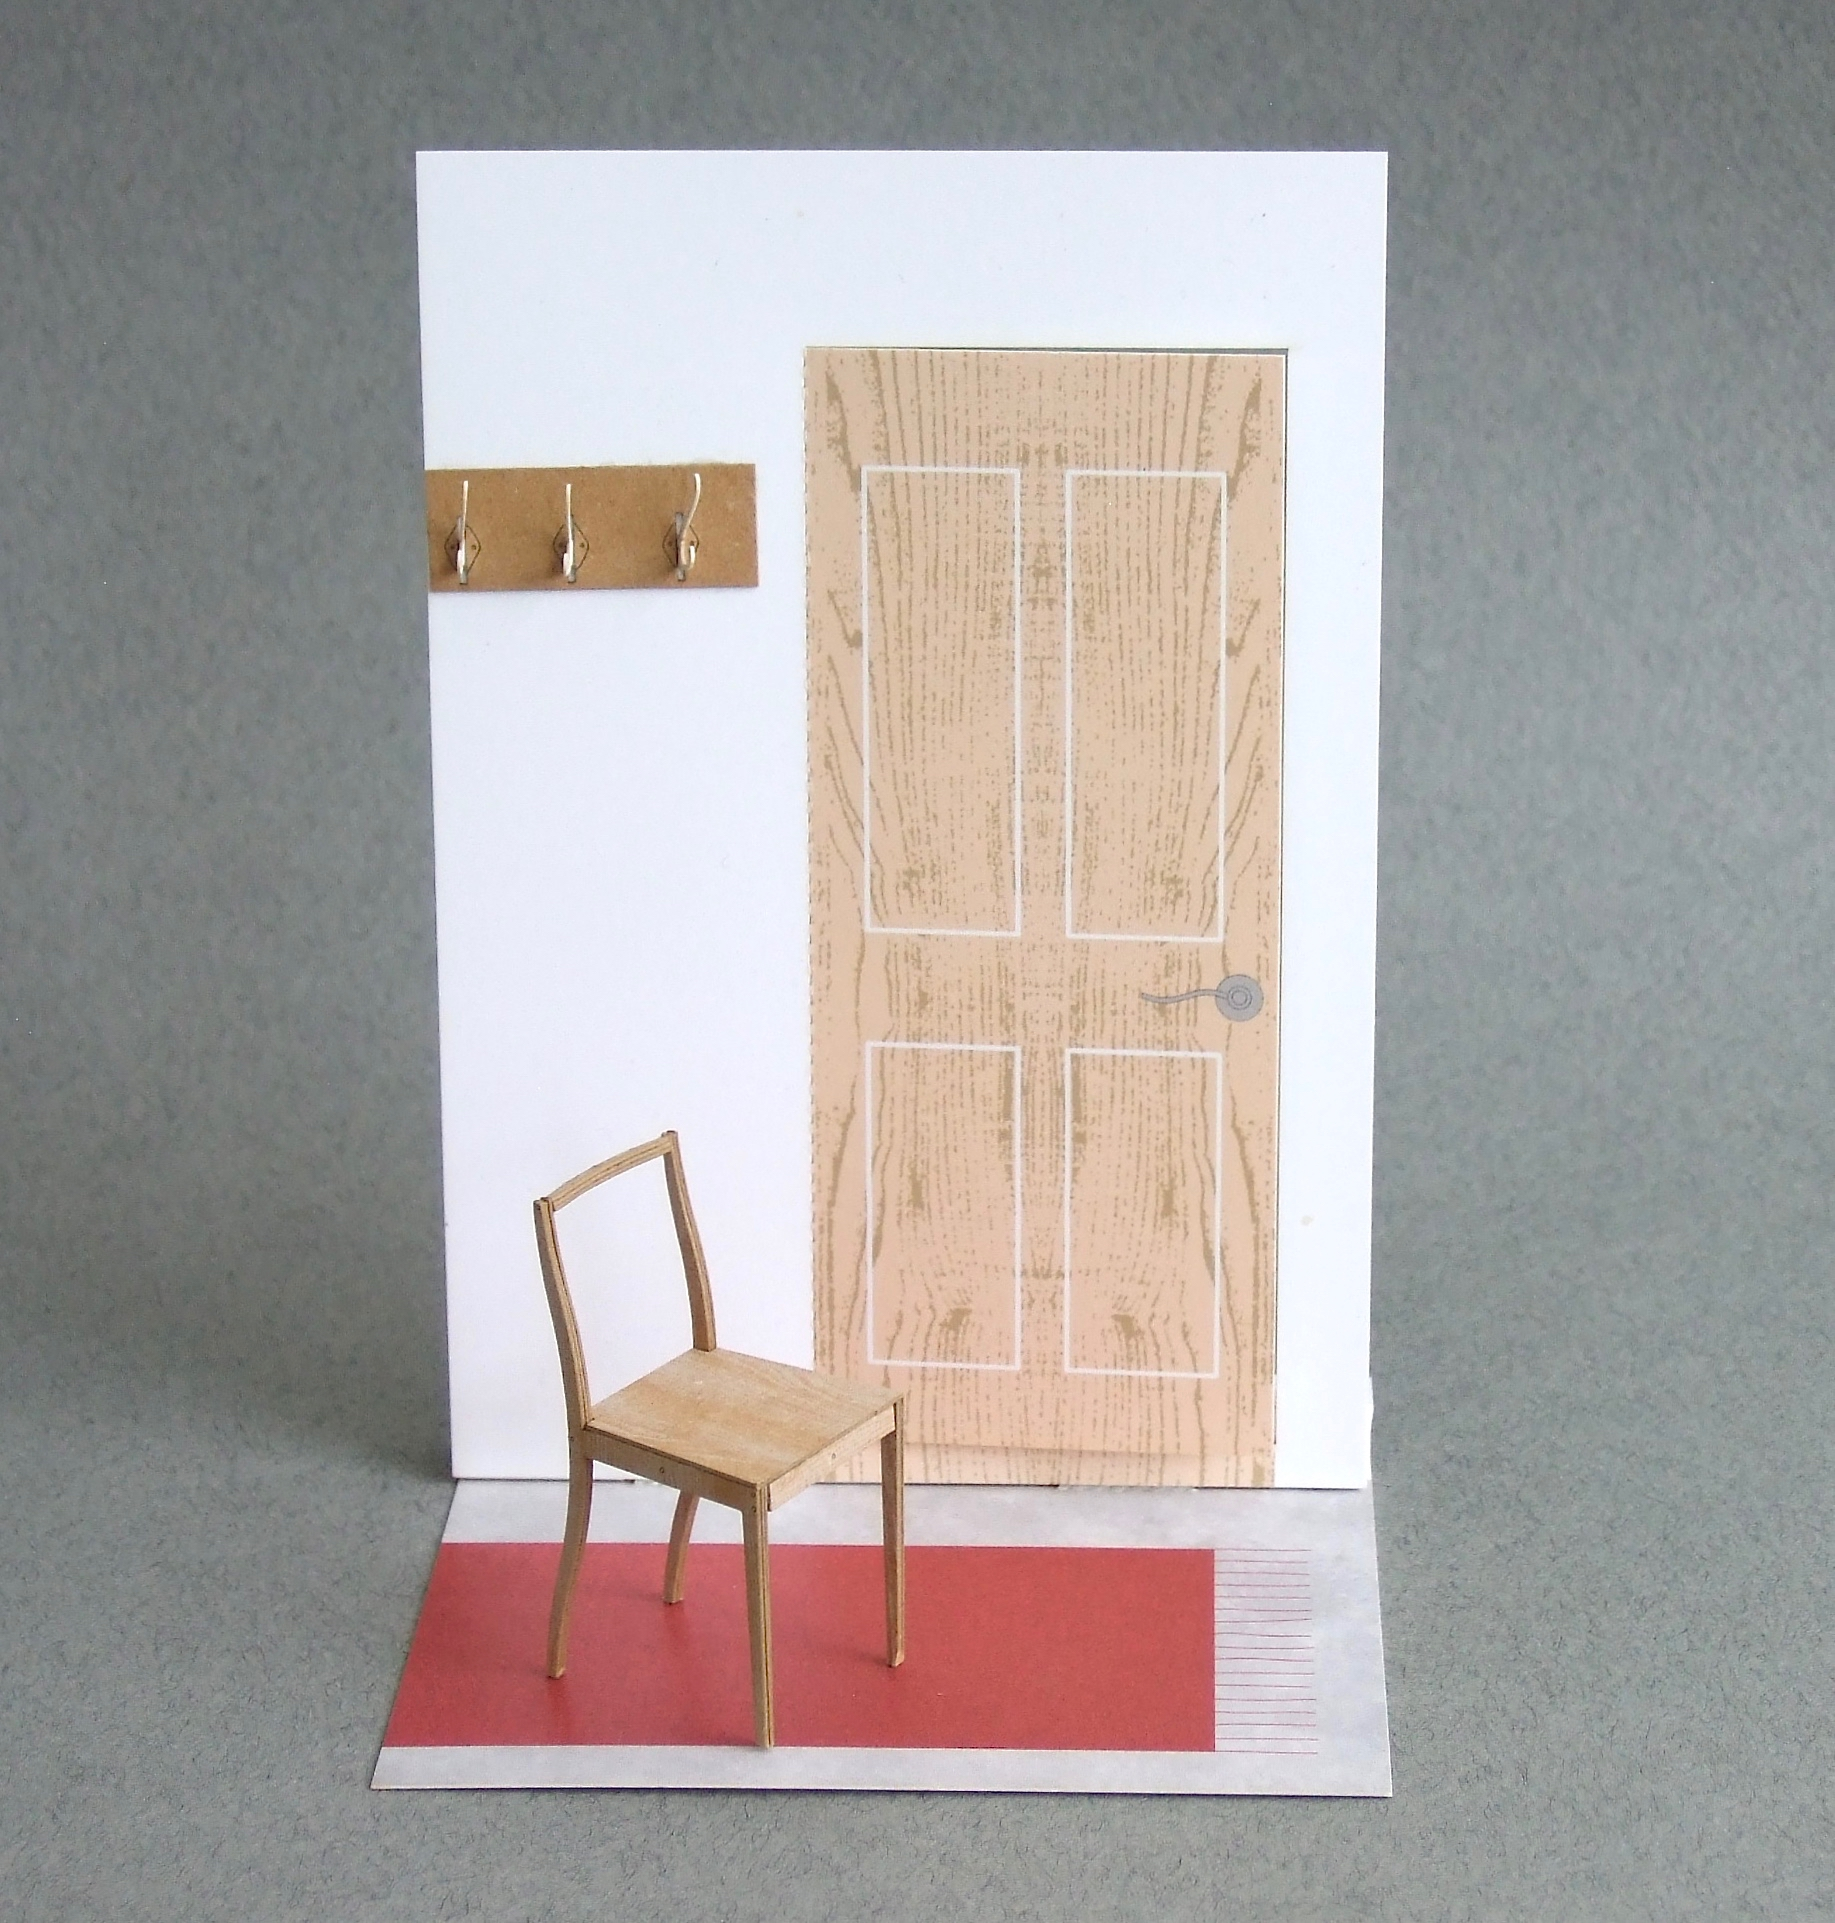 005 Plywood chair.jpg